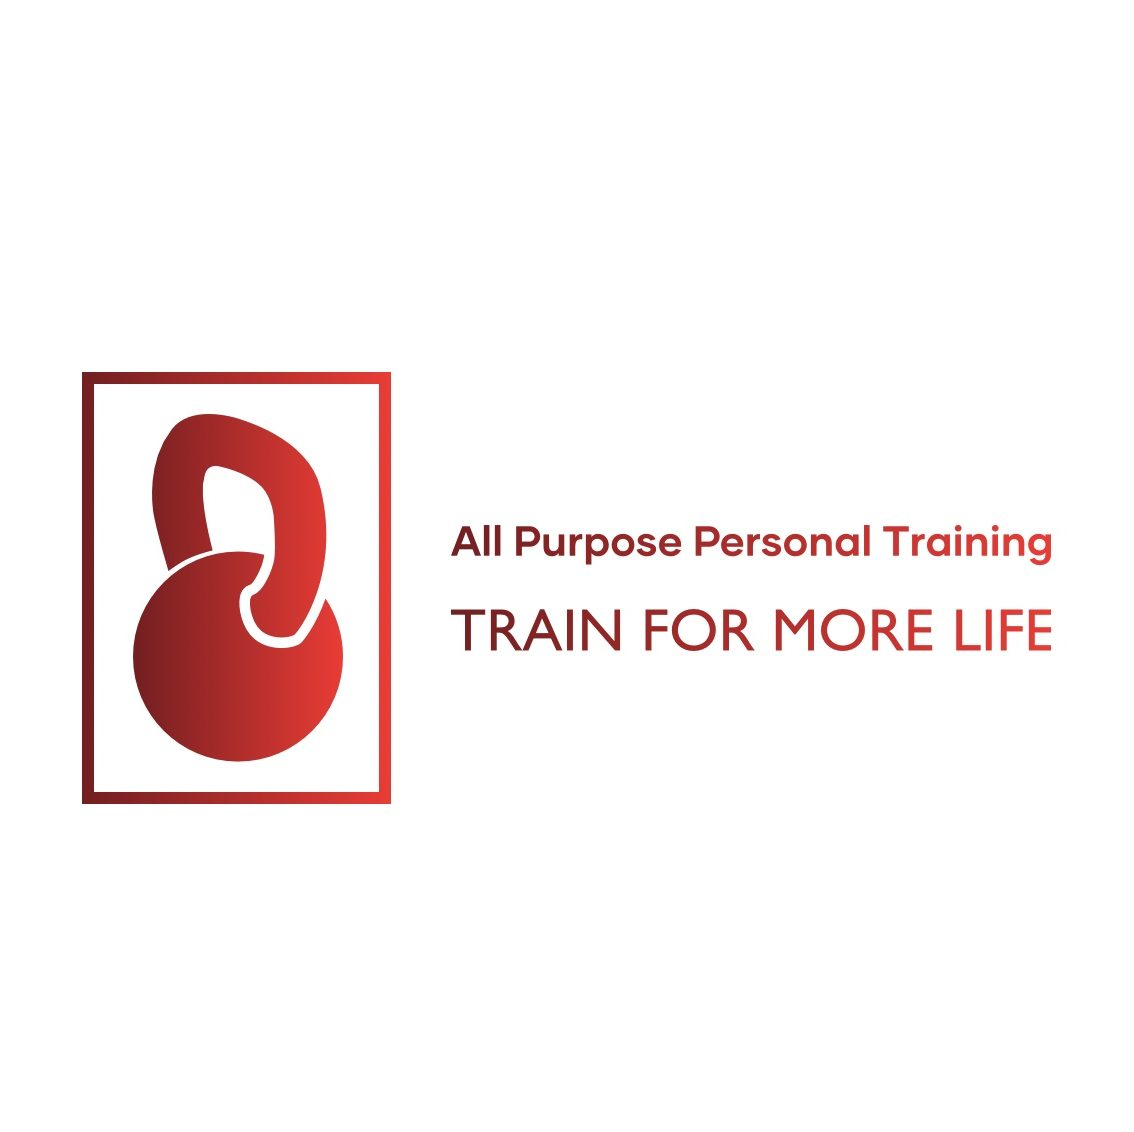 All Purpose Personal Training